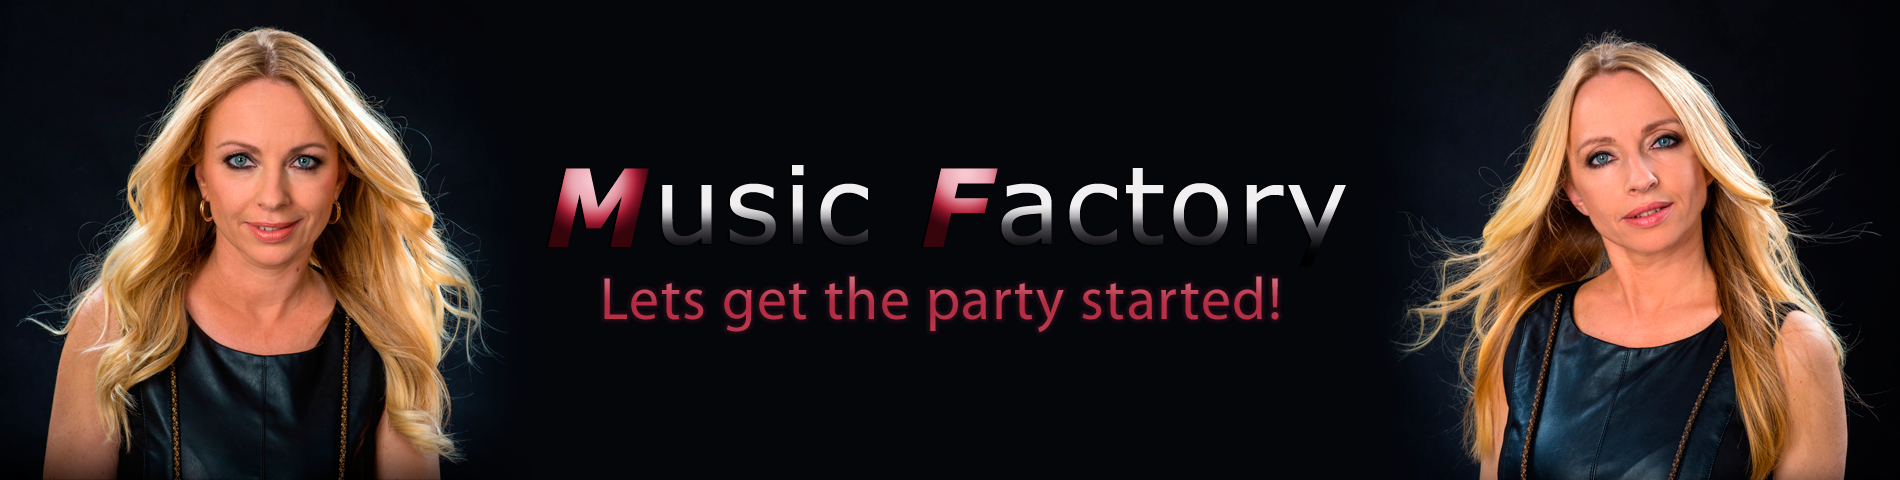 Music Factory - Lets get the party started!